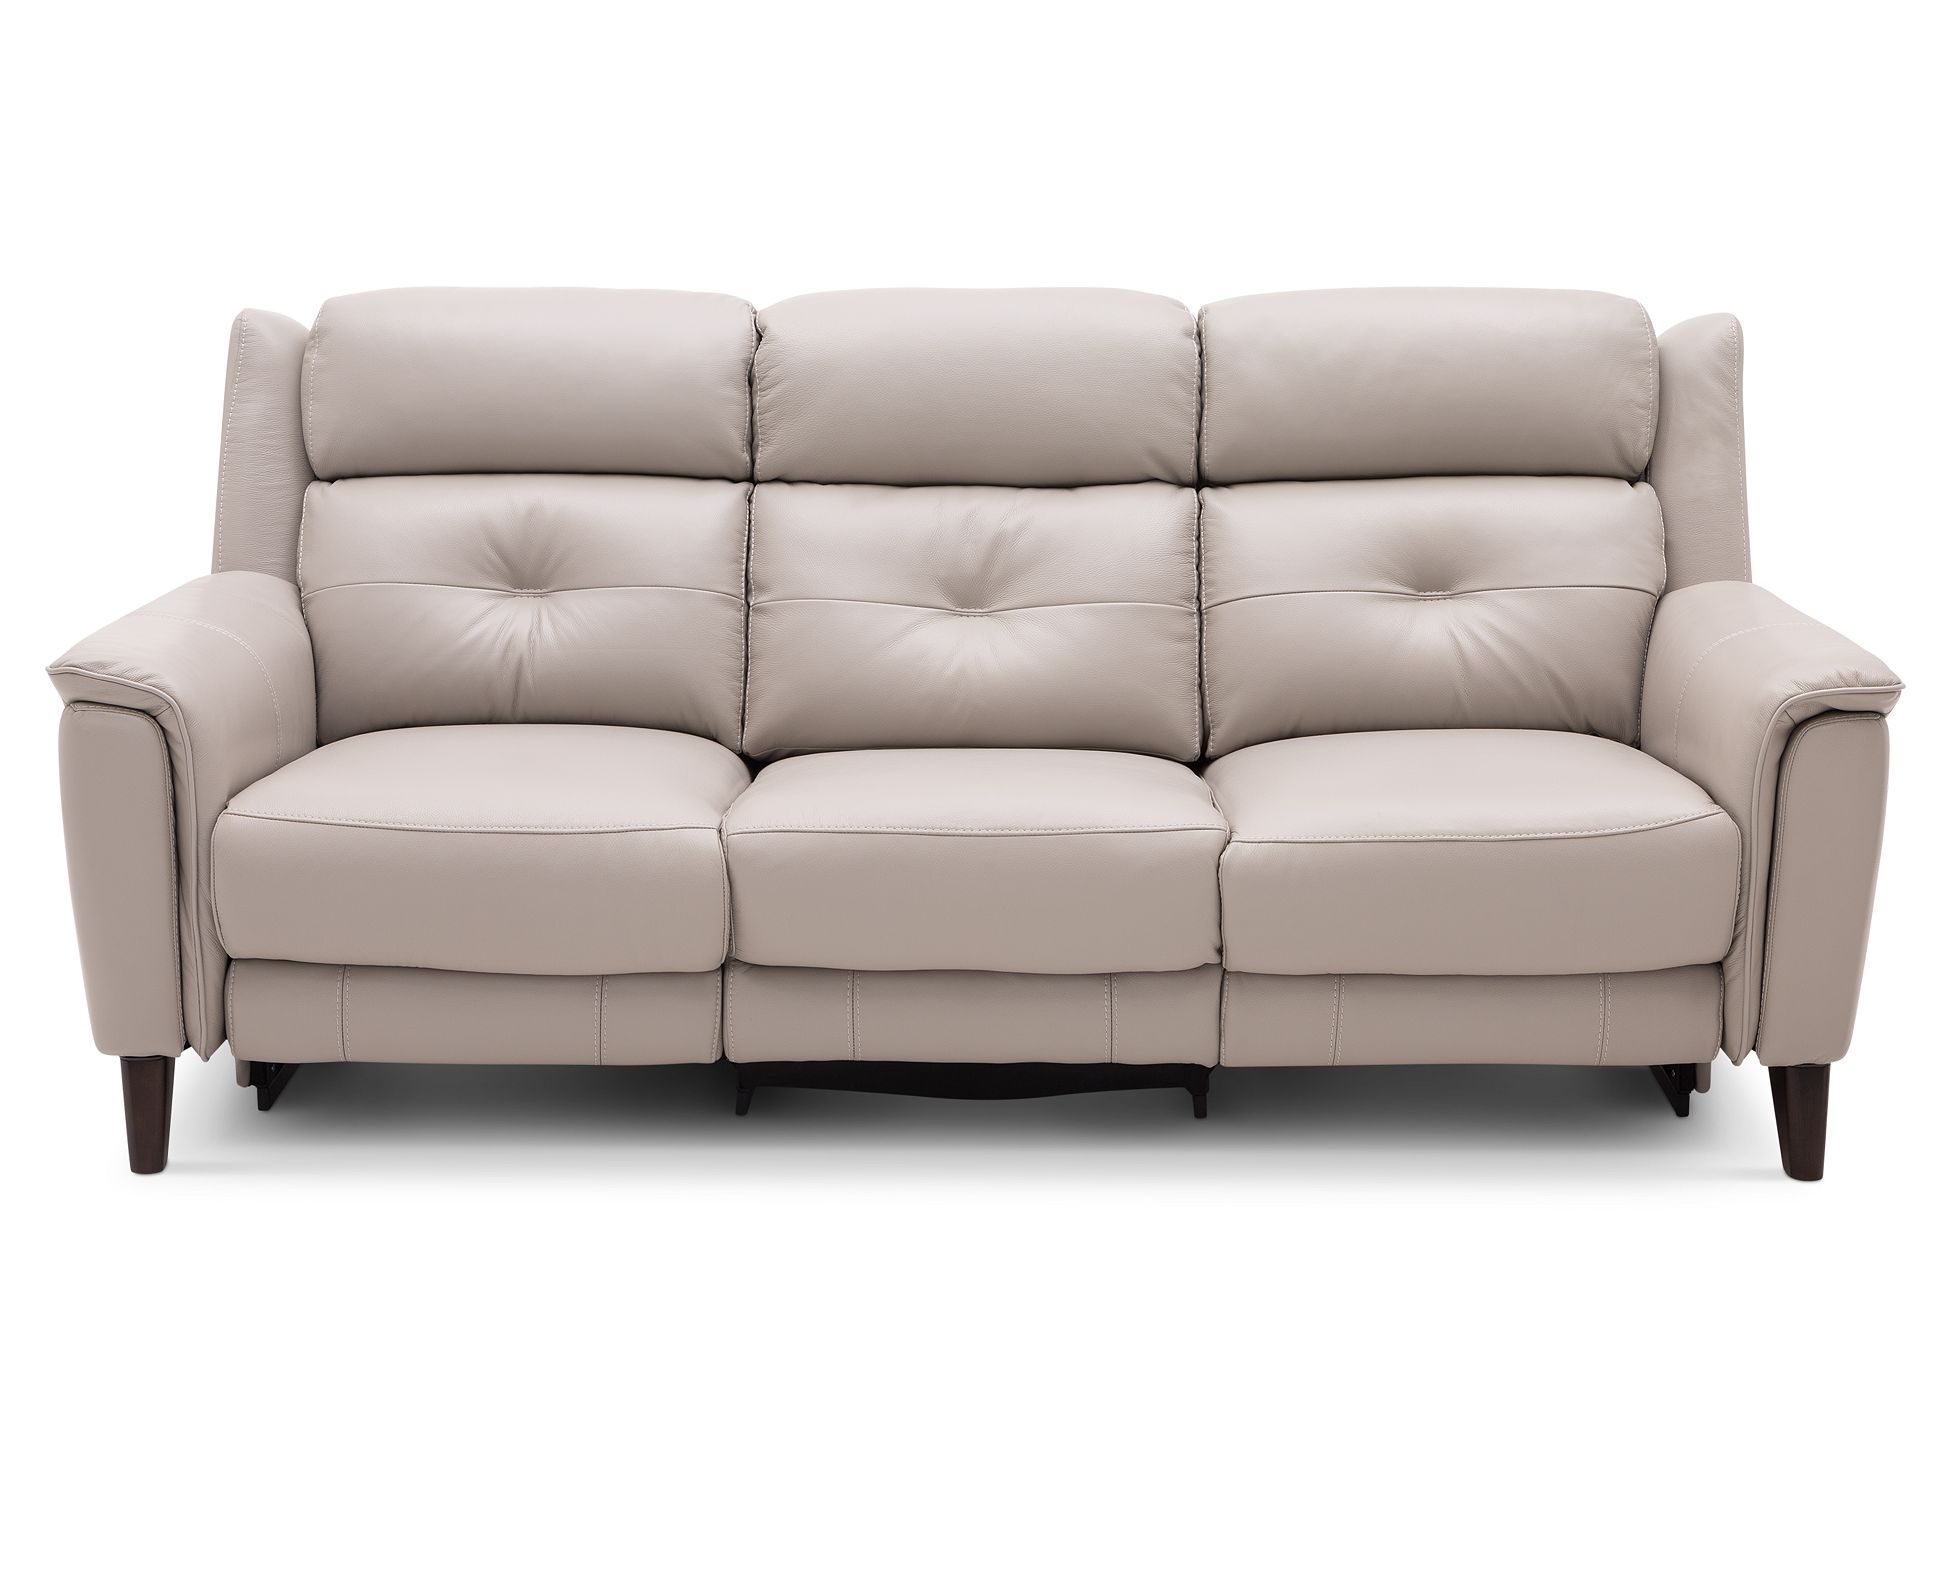 Eclipse Reclining Sofa In Heavyweight Leather Adds Designer Inspired Flair To Your Space With Mid Century Modern Style F Rowe Furniture Reclining Sofa Sofa